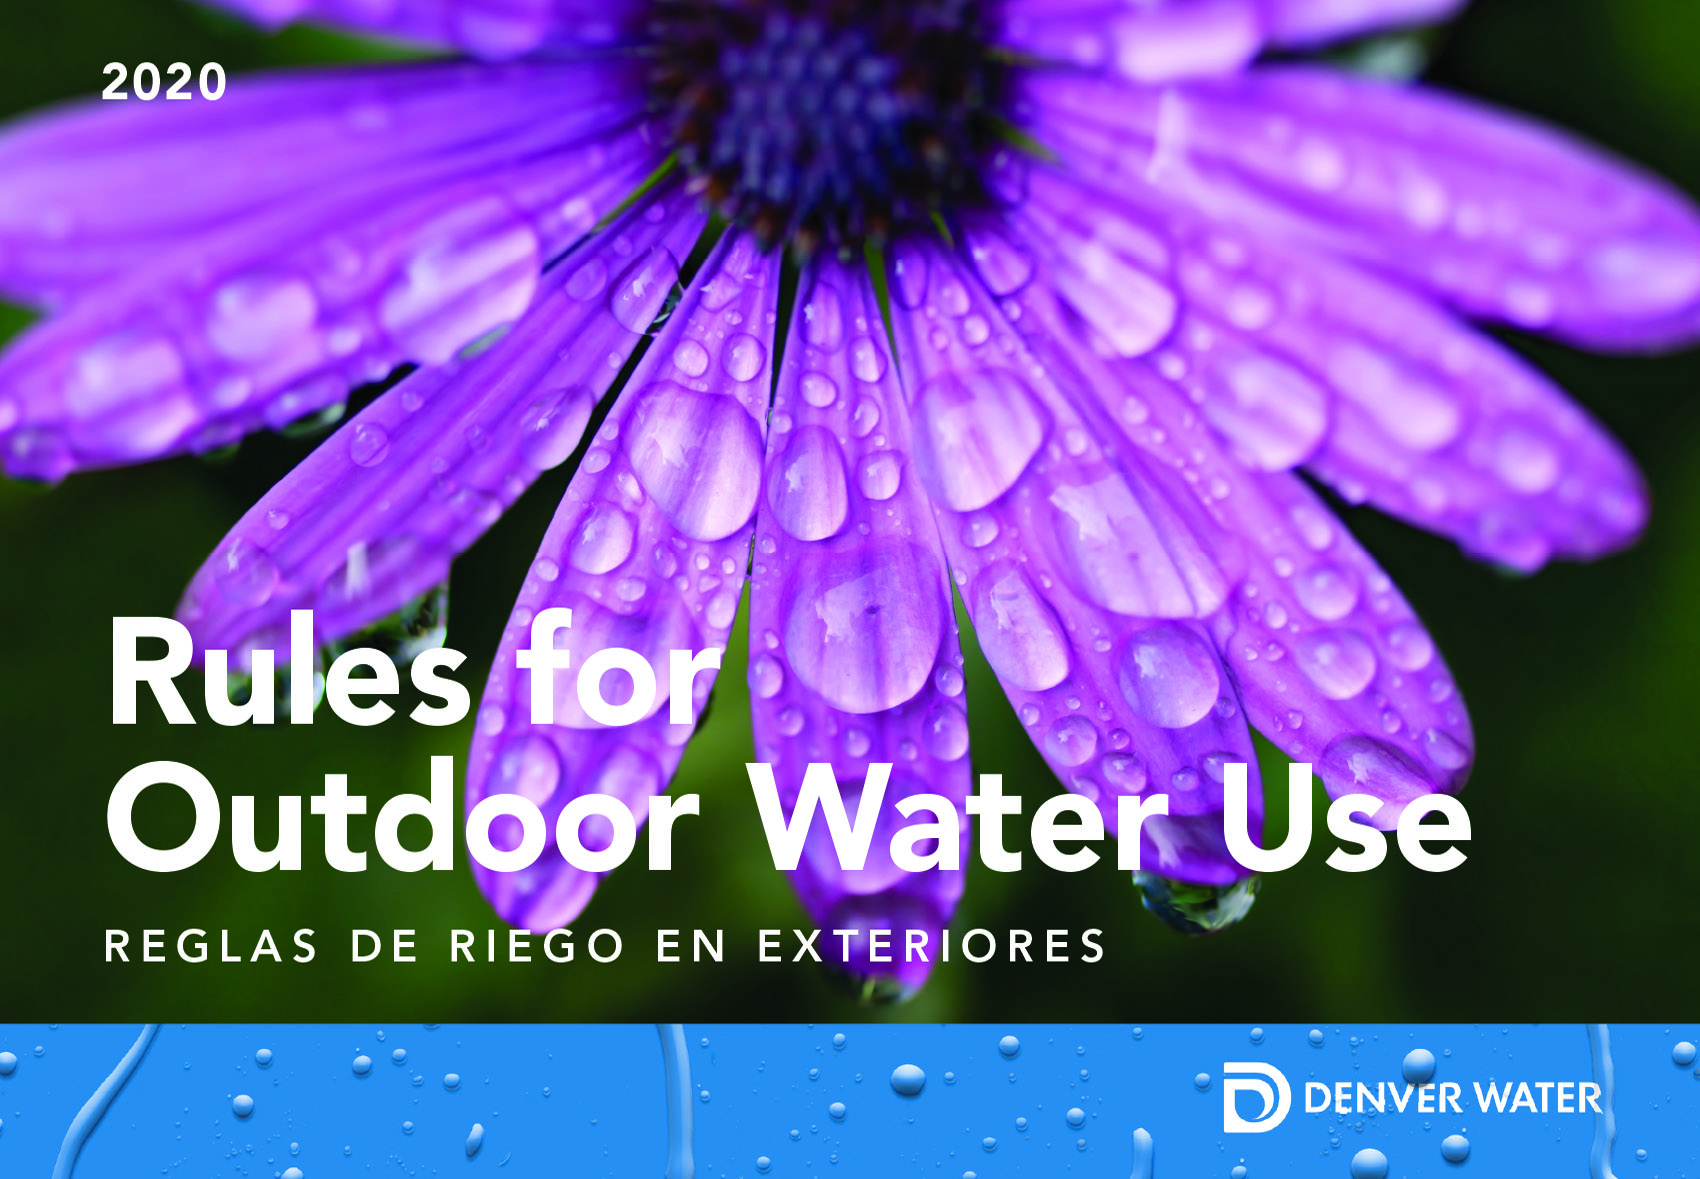 Cover image of the 2020 Summer Watering Rules mailed to customers. Image credit: Denver Water.